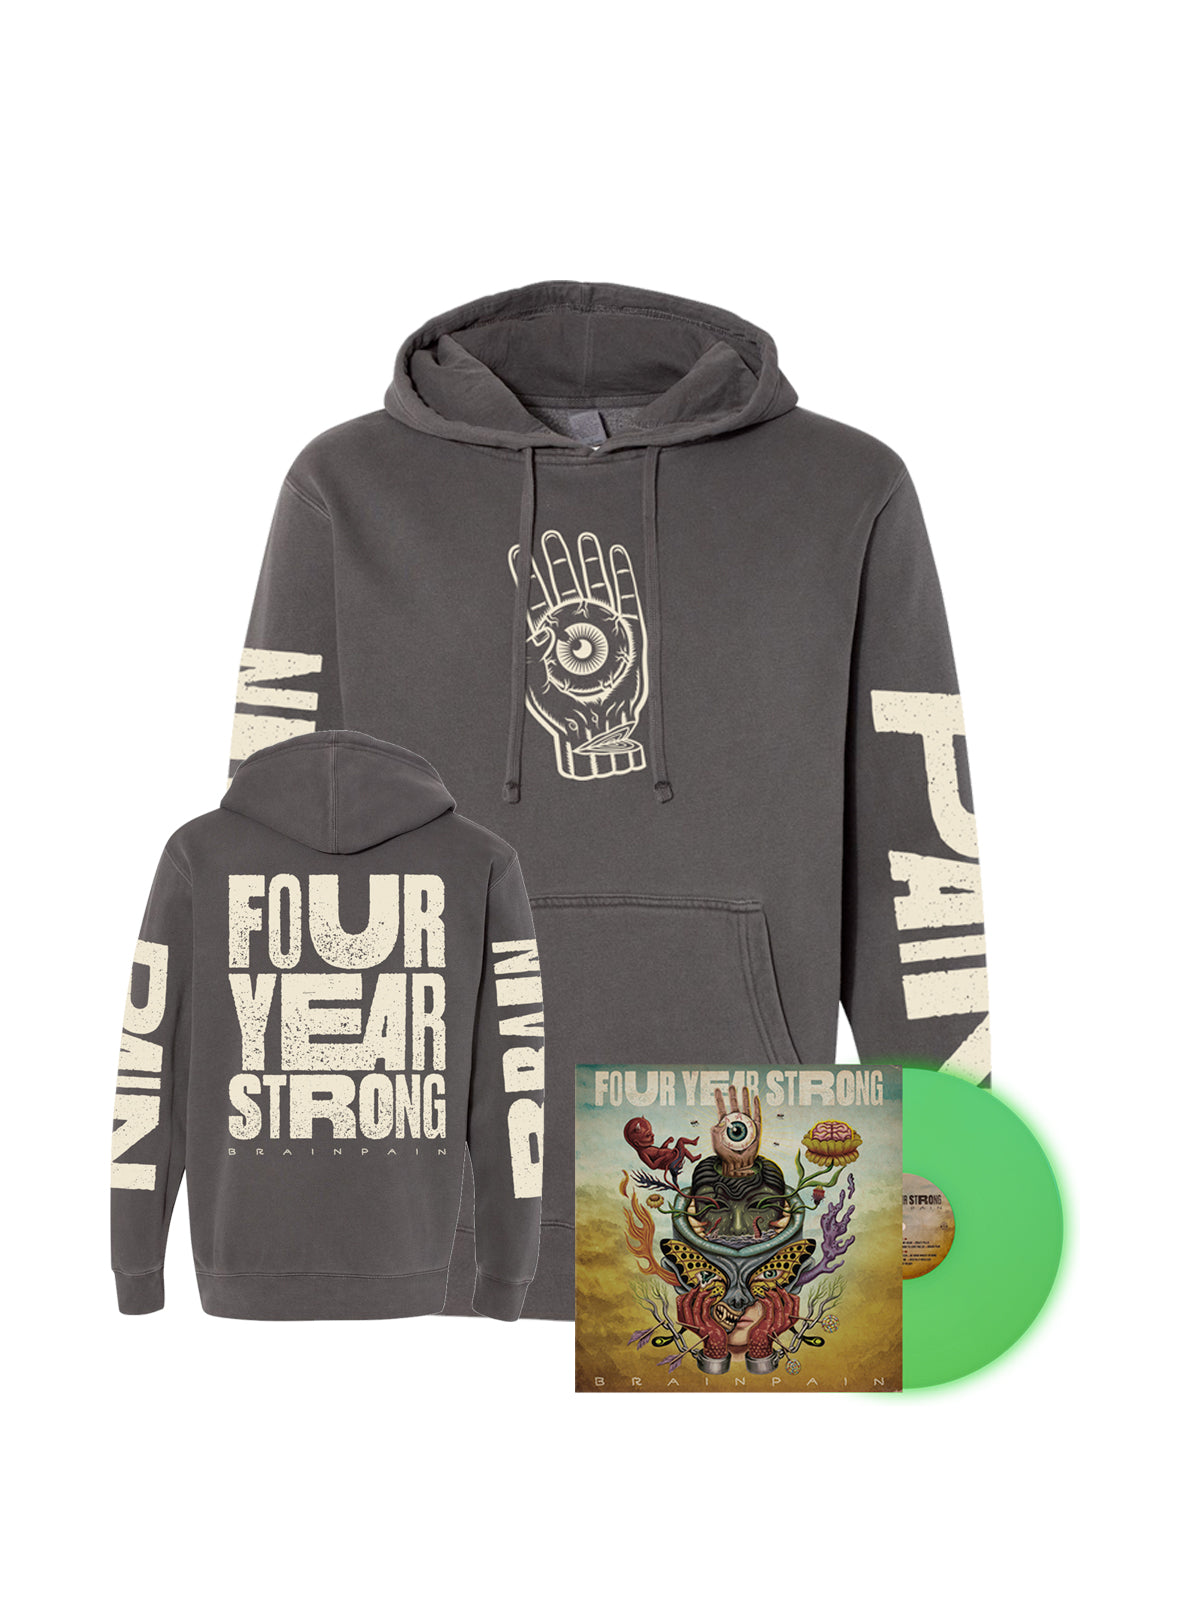 Four Year Strong - Brainpain LP + Hoodie Bundle - SHIPS MARCH 12 - Merch Limited